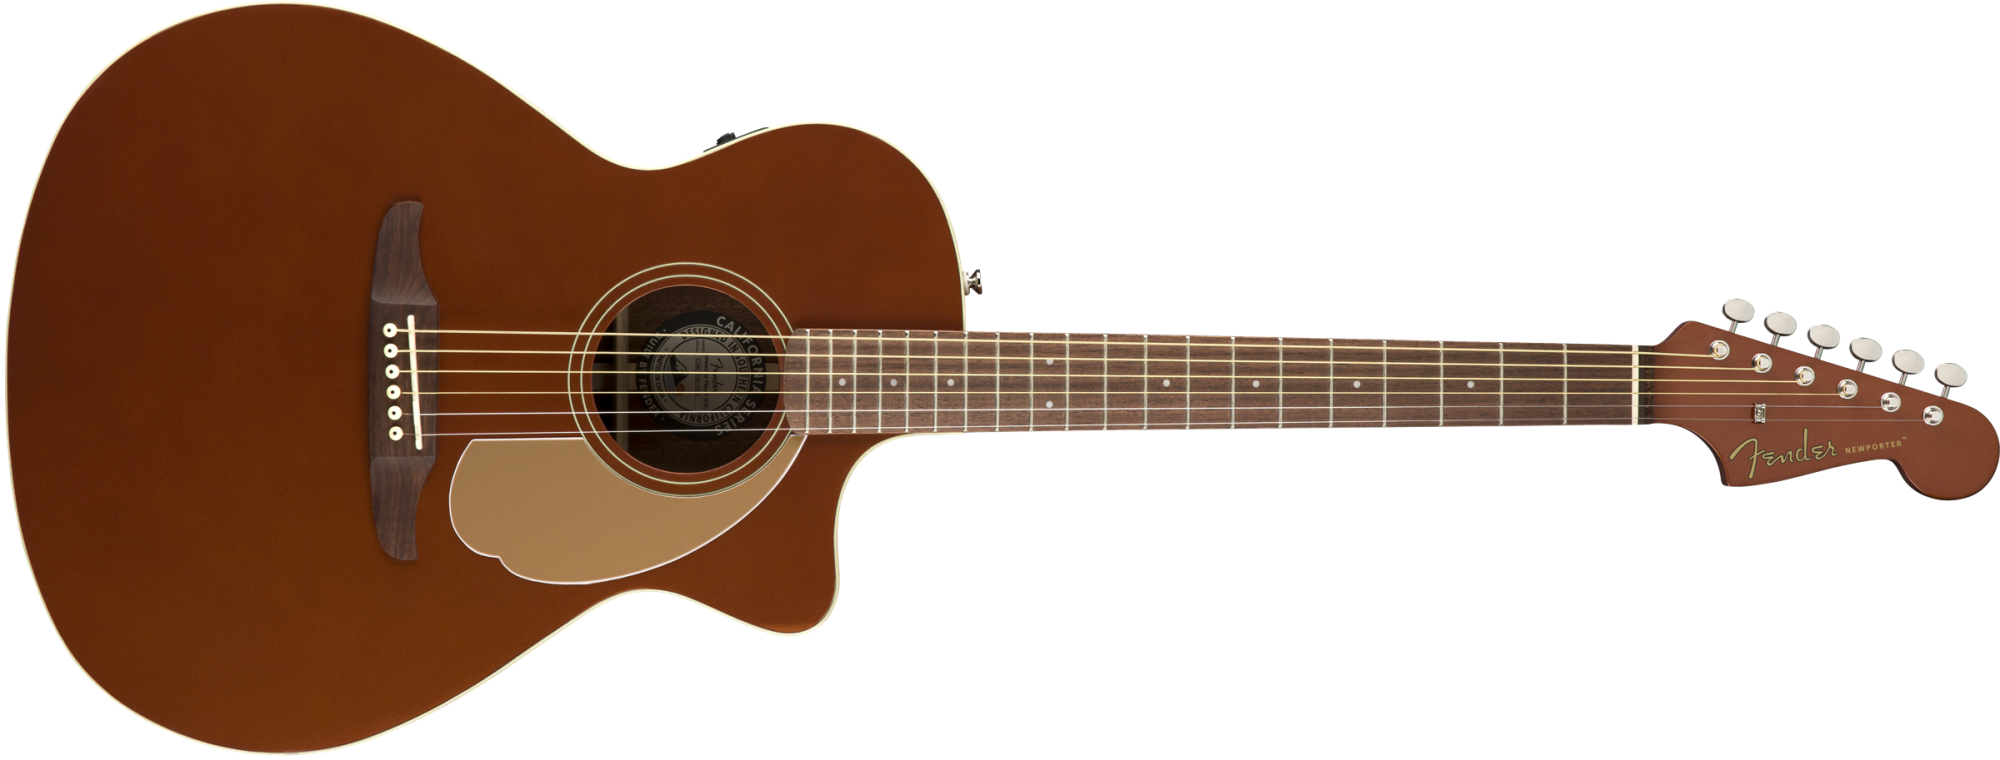 Fender Newporter Player Acoustic-Electric Guitar, Walnut Fingerboard, Rustic Copper